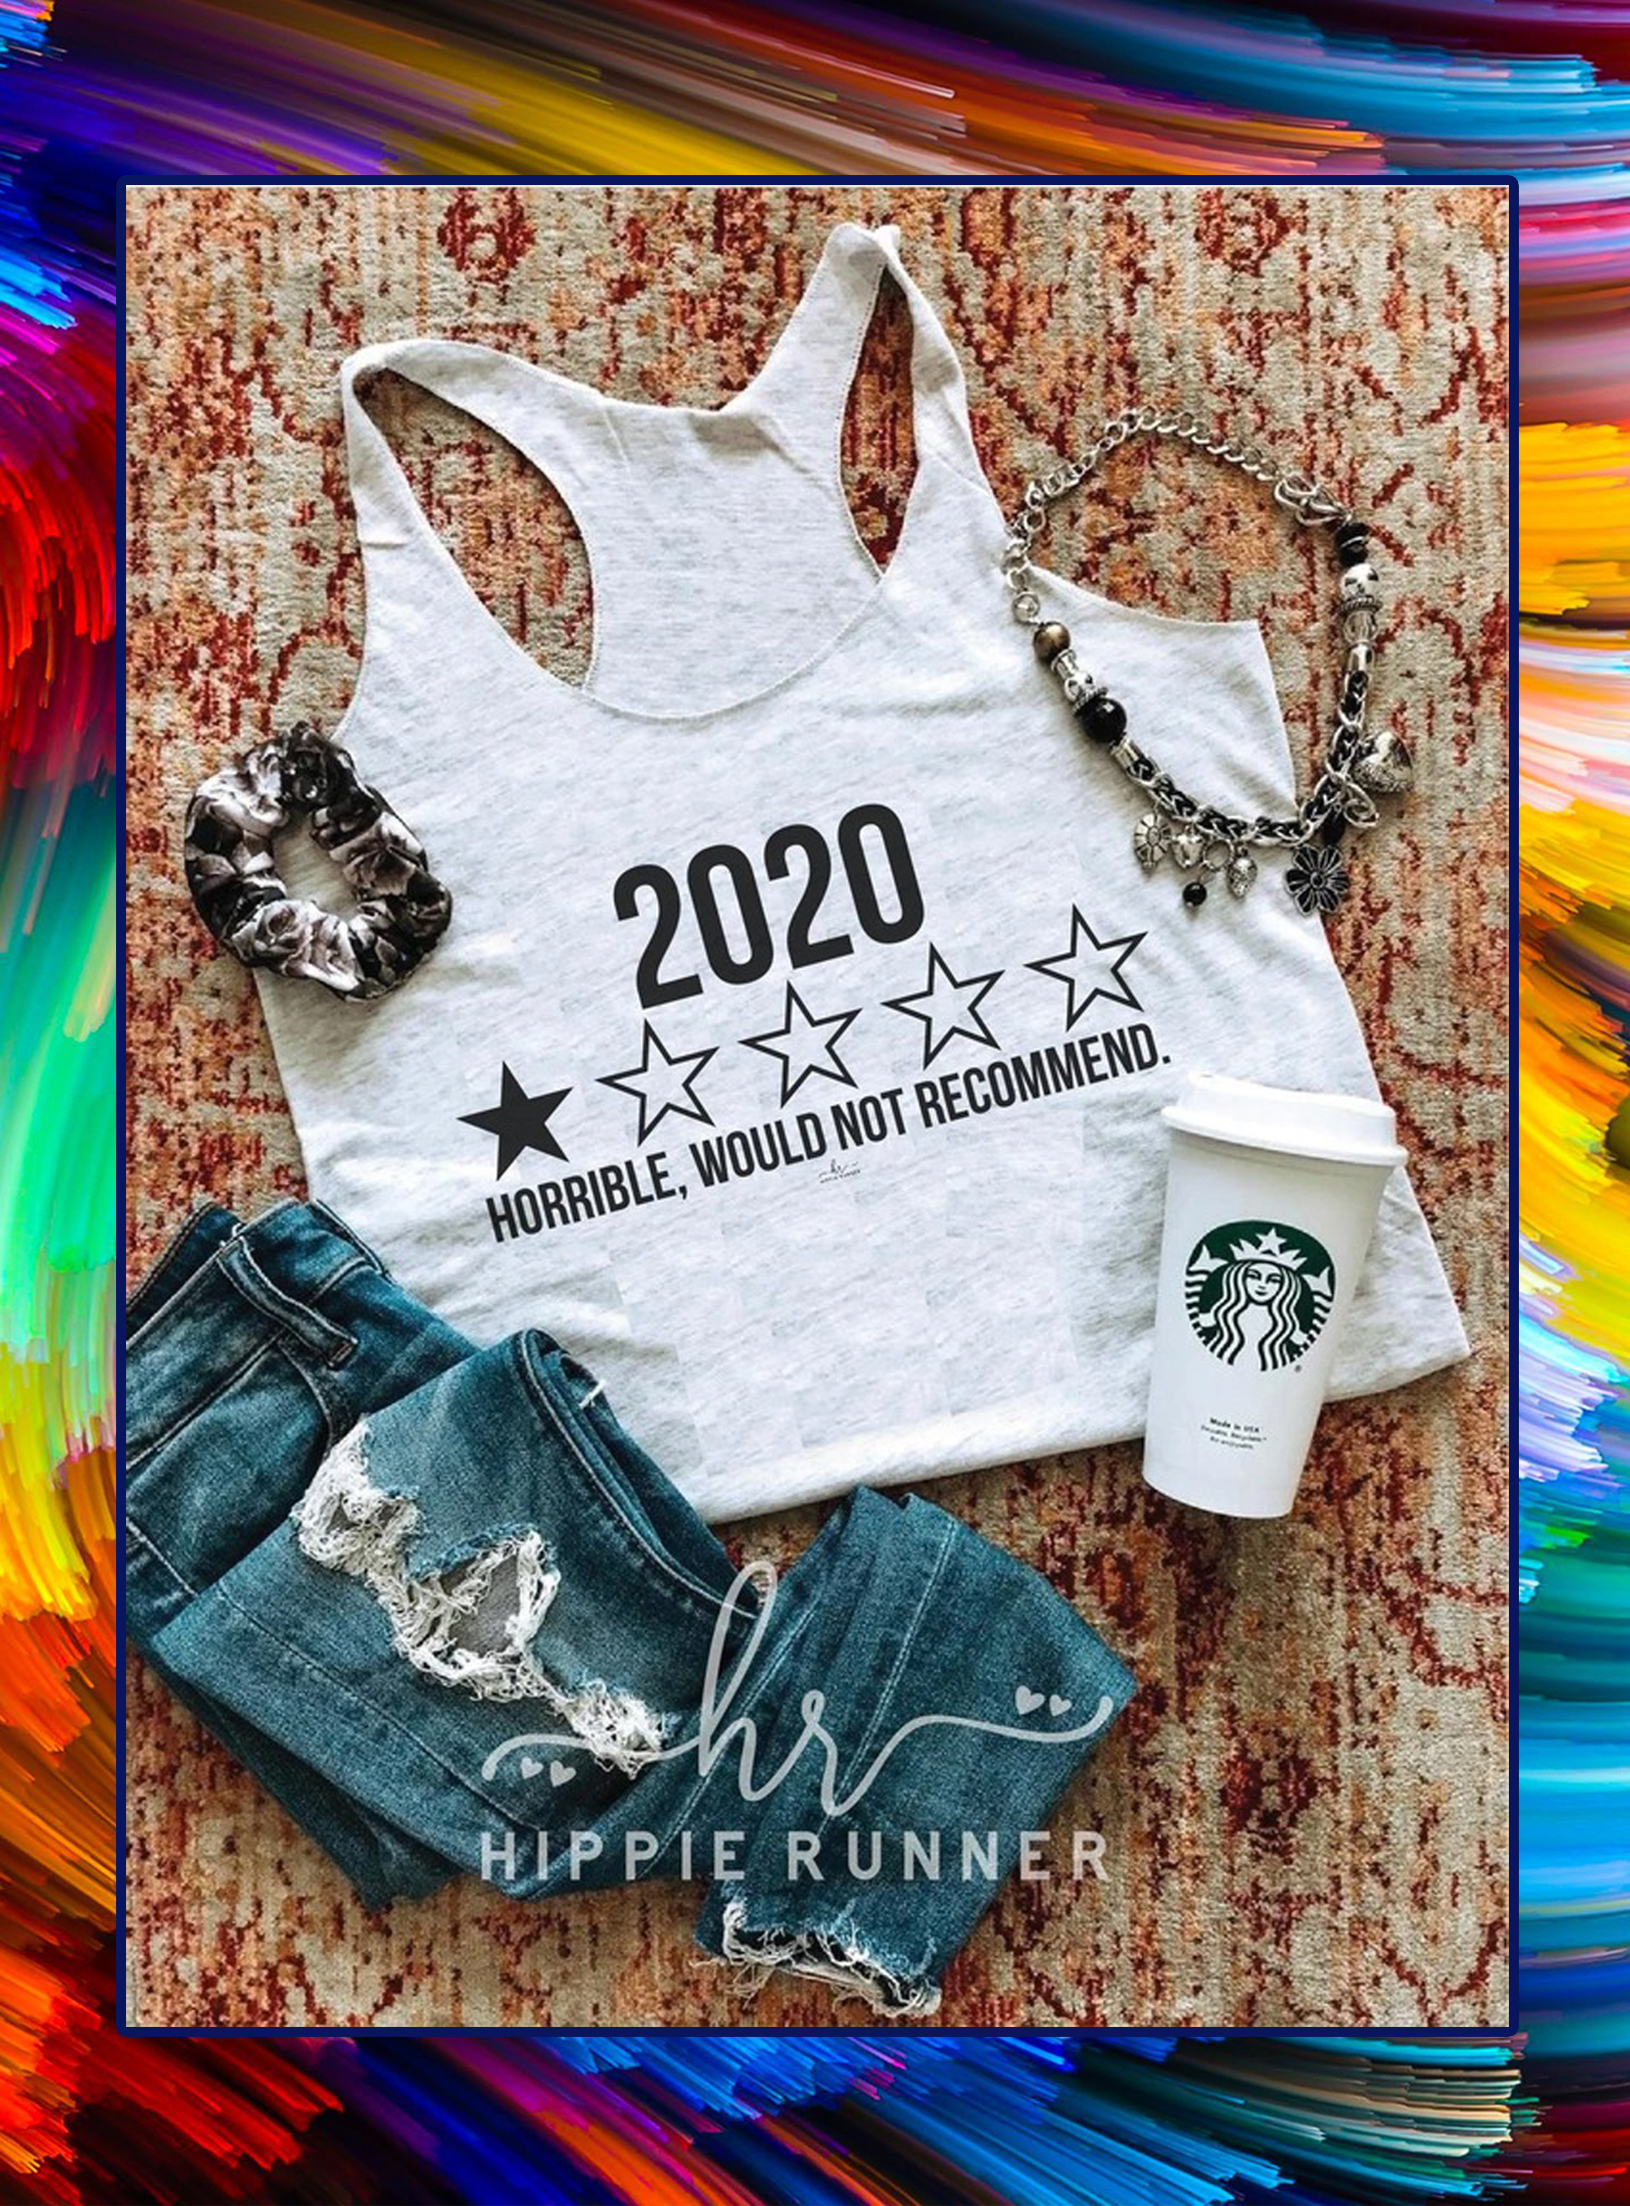 2020 horrible would not recommend tank top